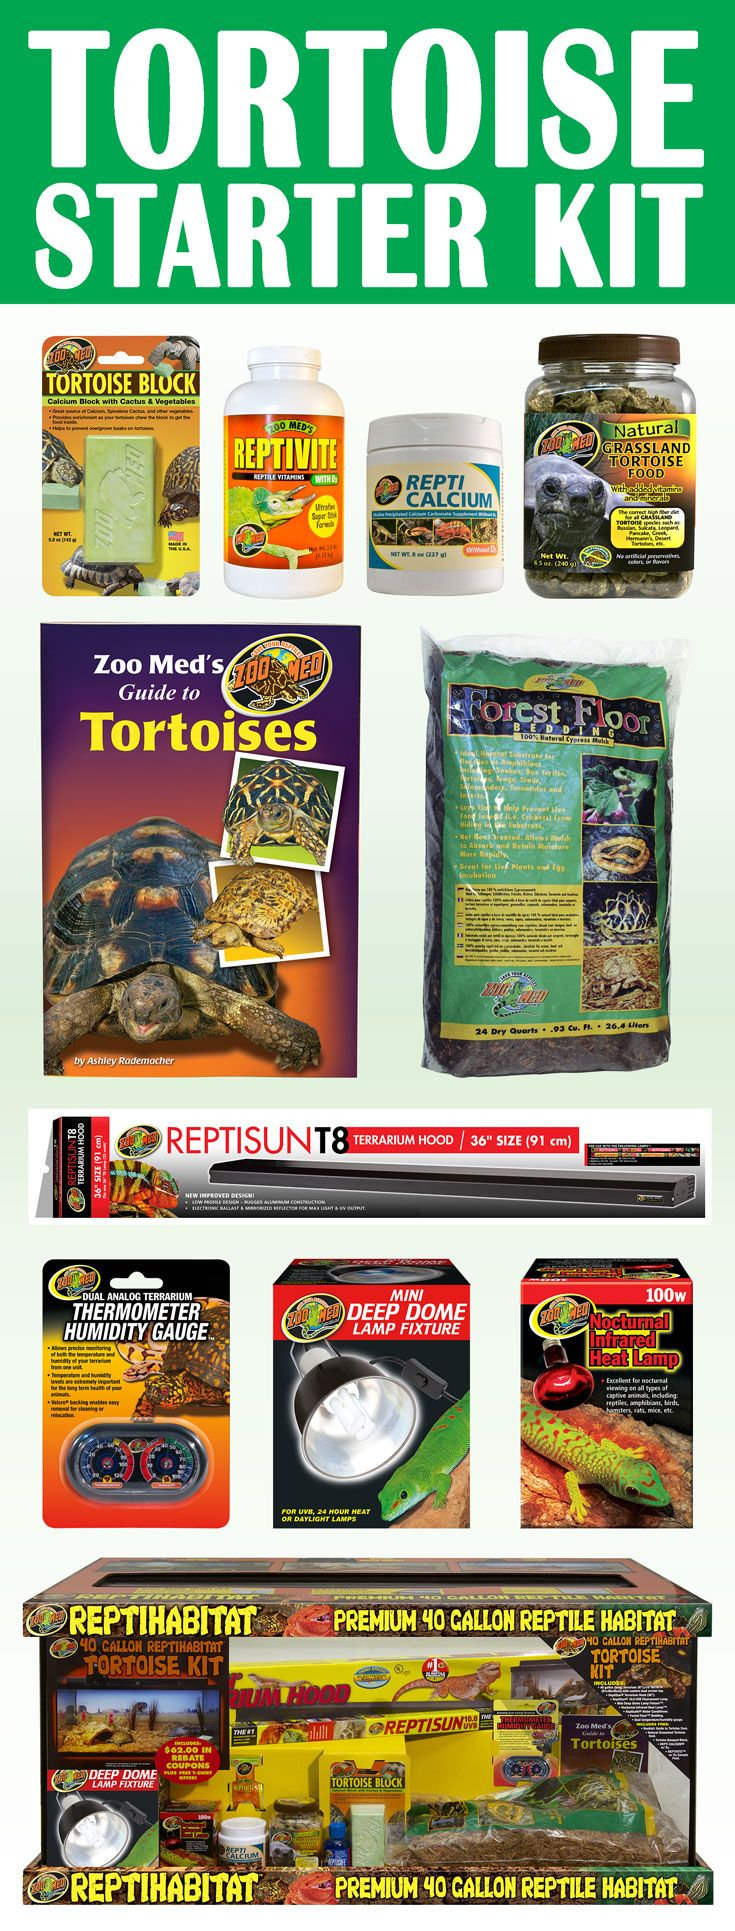 Tortoise Starter Kit Everything You Need To Set Up A Tortoise Habitat Comes W Zoo Med S Guide